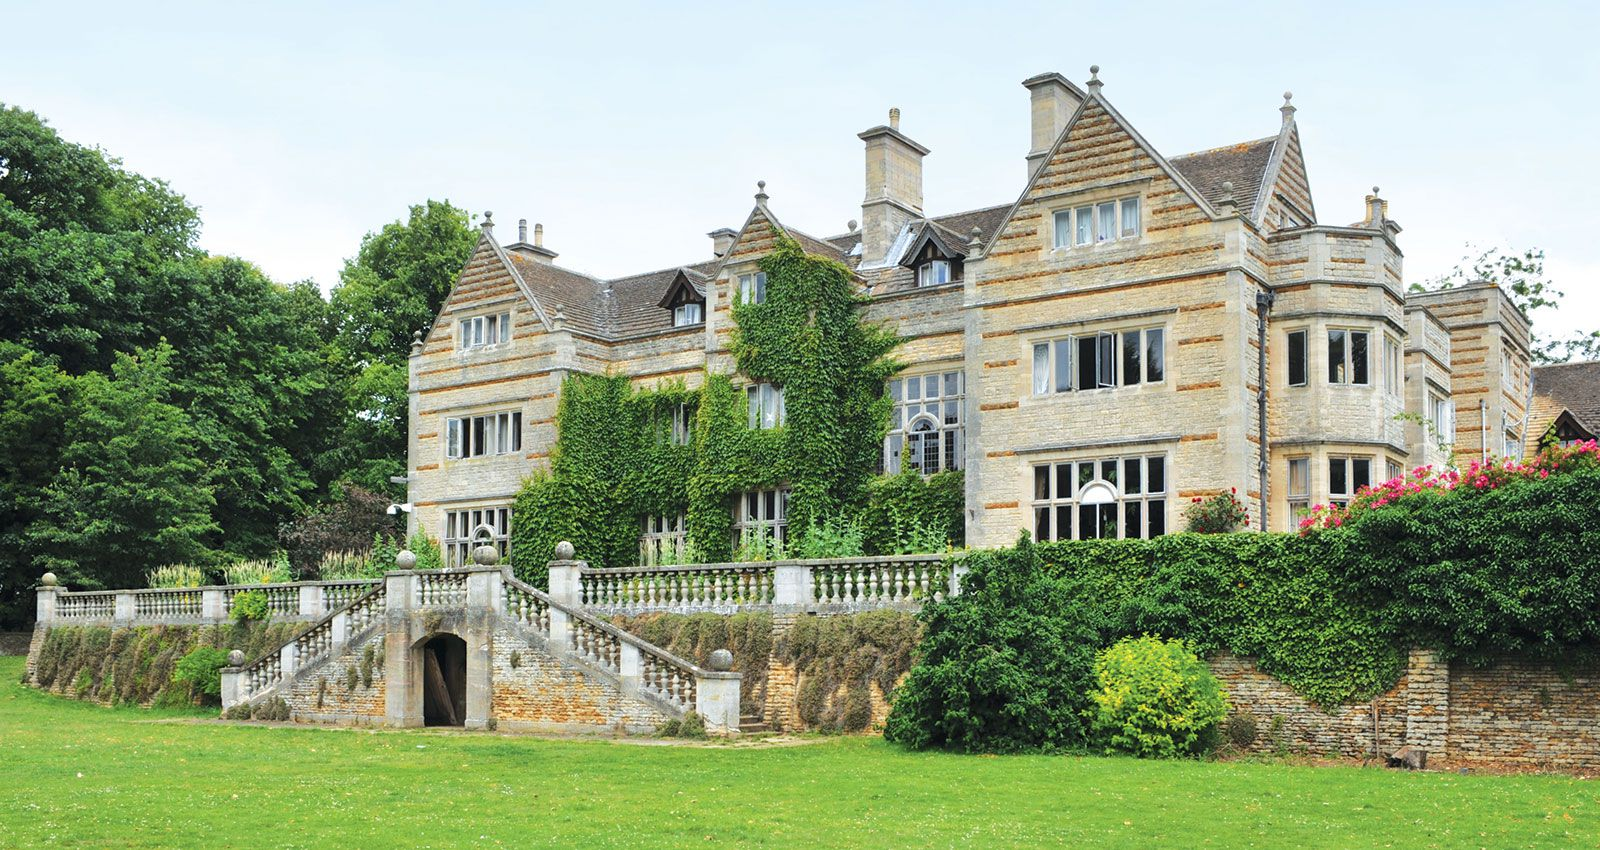 Caythorpe Court